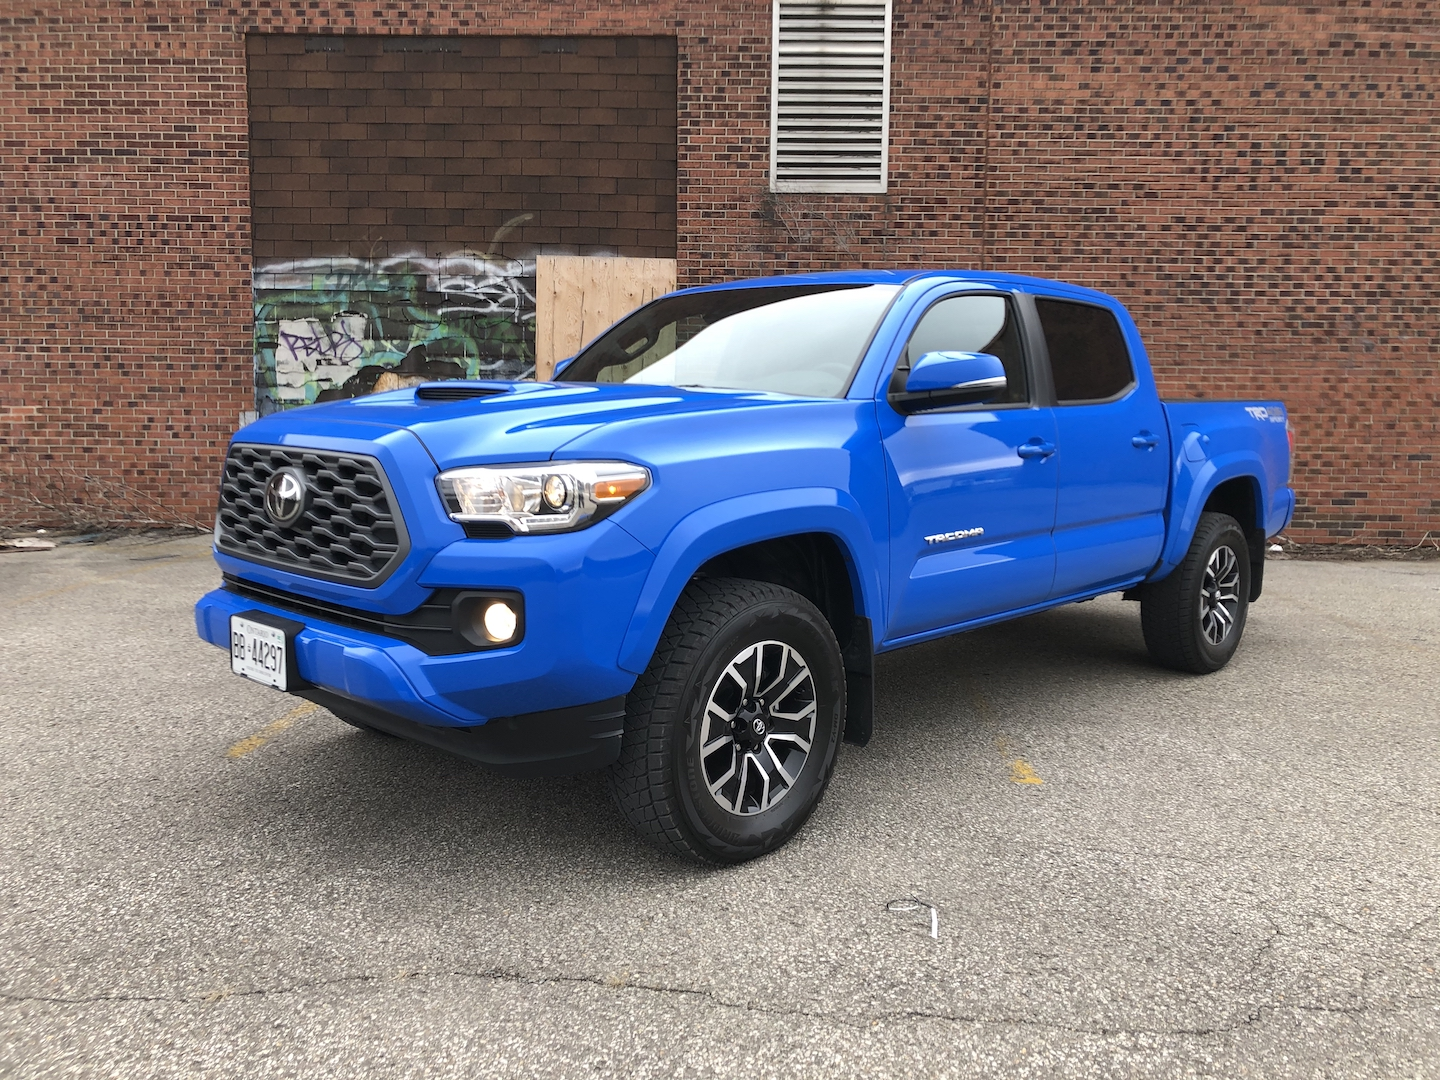 2020 Toyota Tacoma Review The New One S Still Years Away And We Re Fine With That Motor Illustrated